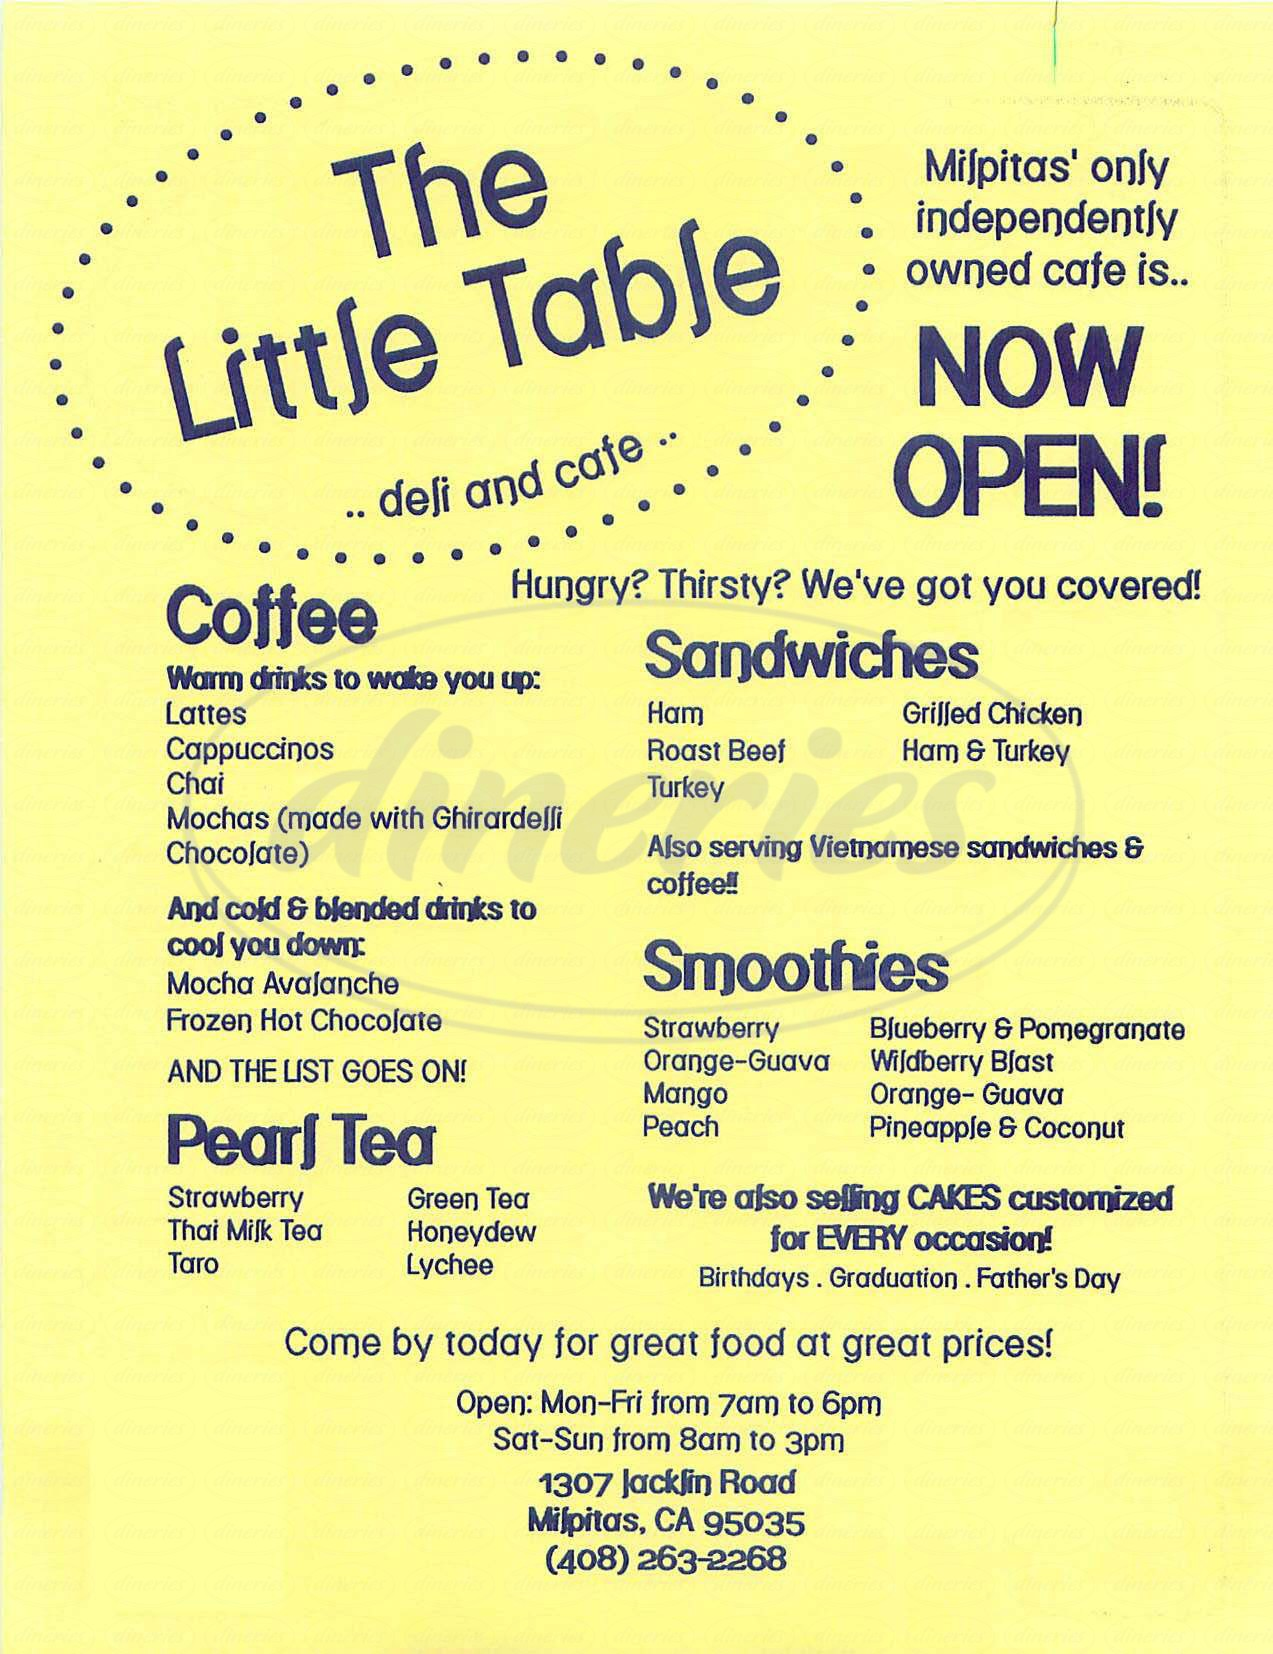 menu for The Little Table